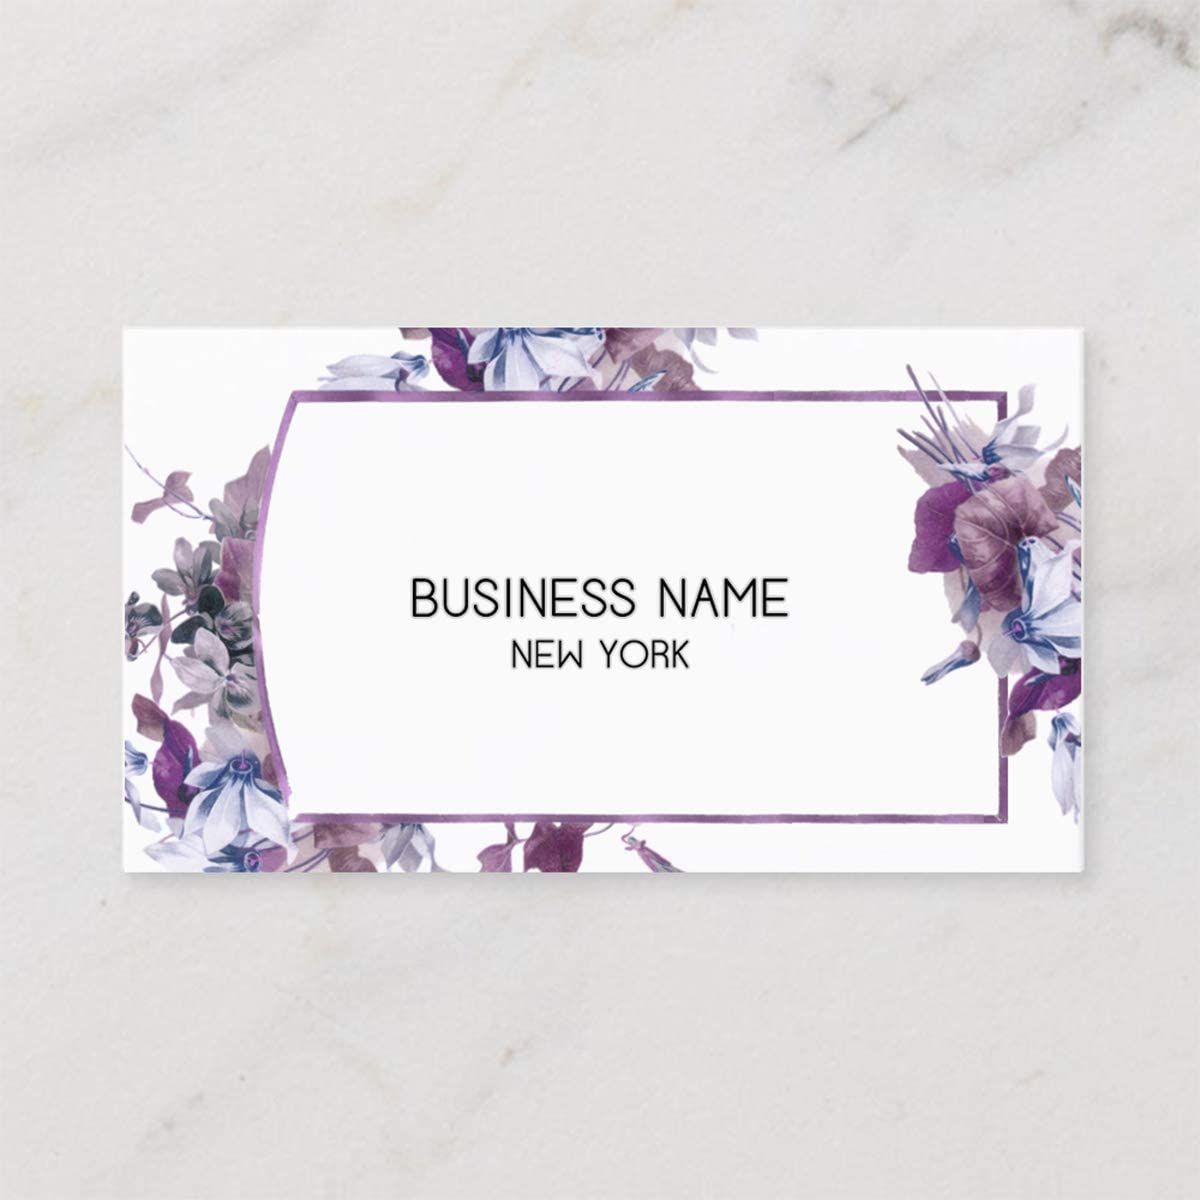 Business Cards Customizable 007.Business Card Max 76% OFF Frame Max 43% OFF Car